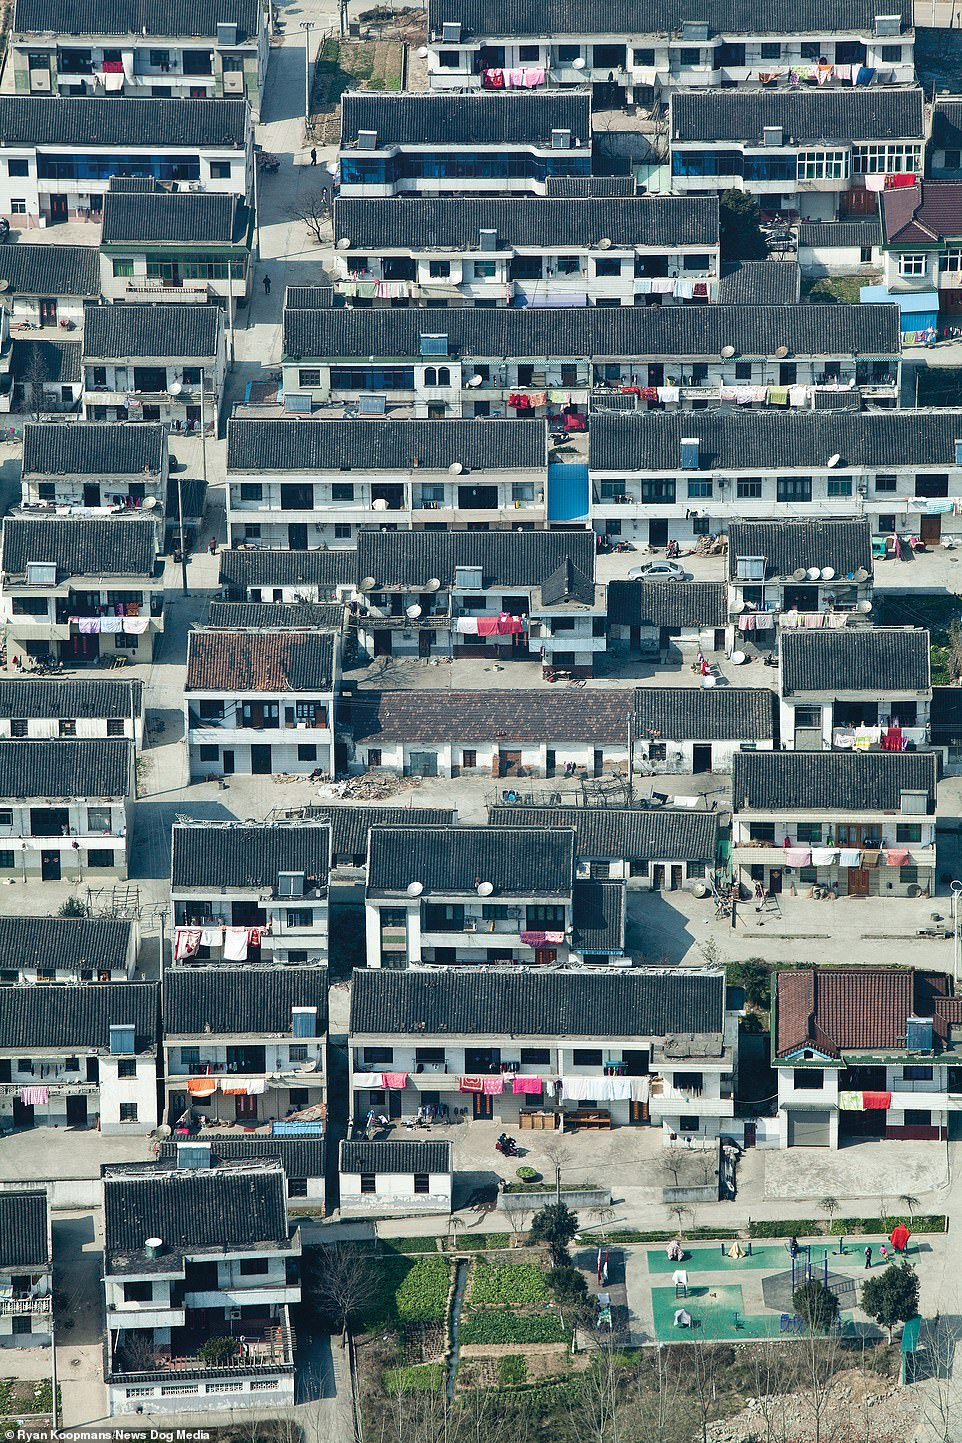 Farmer's housing in Jiangsu, China, 2012. A leading province in education, tourism and home to the world's leading exporters of electronic equipment